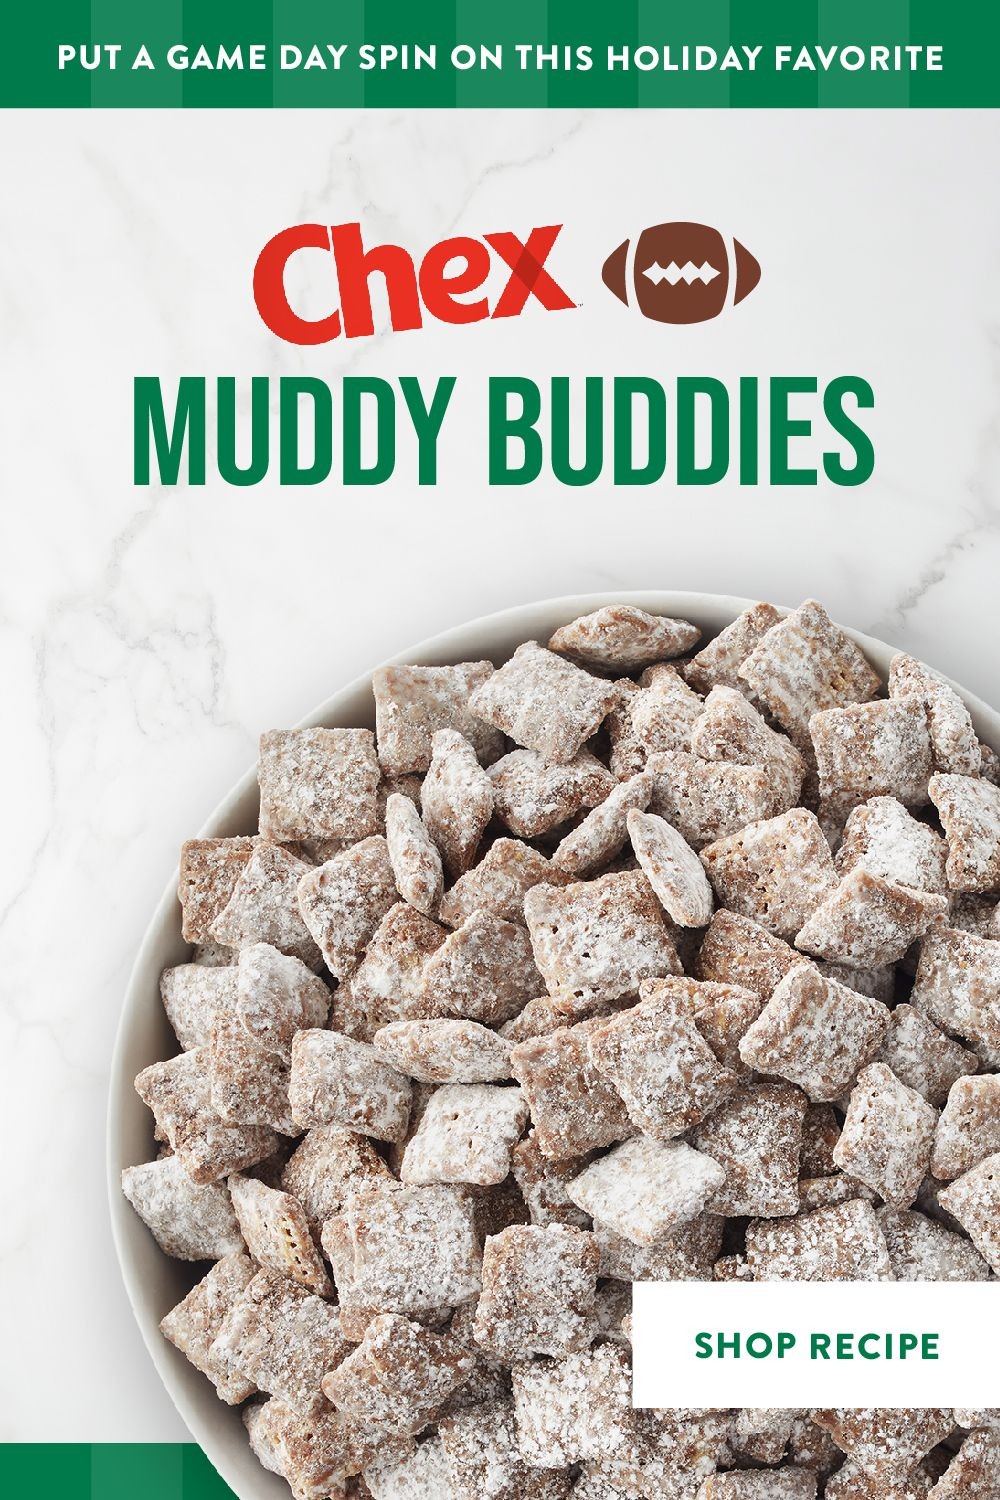 Shop Ingredients For Chex Muddy Buddies In 2021 Starbucks Drinks Recipes Chex Muddy Buddies Chex Mix Recipes